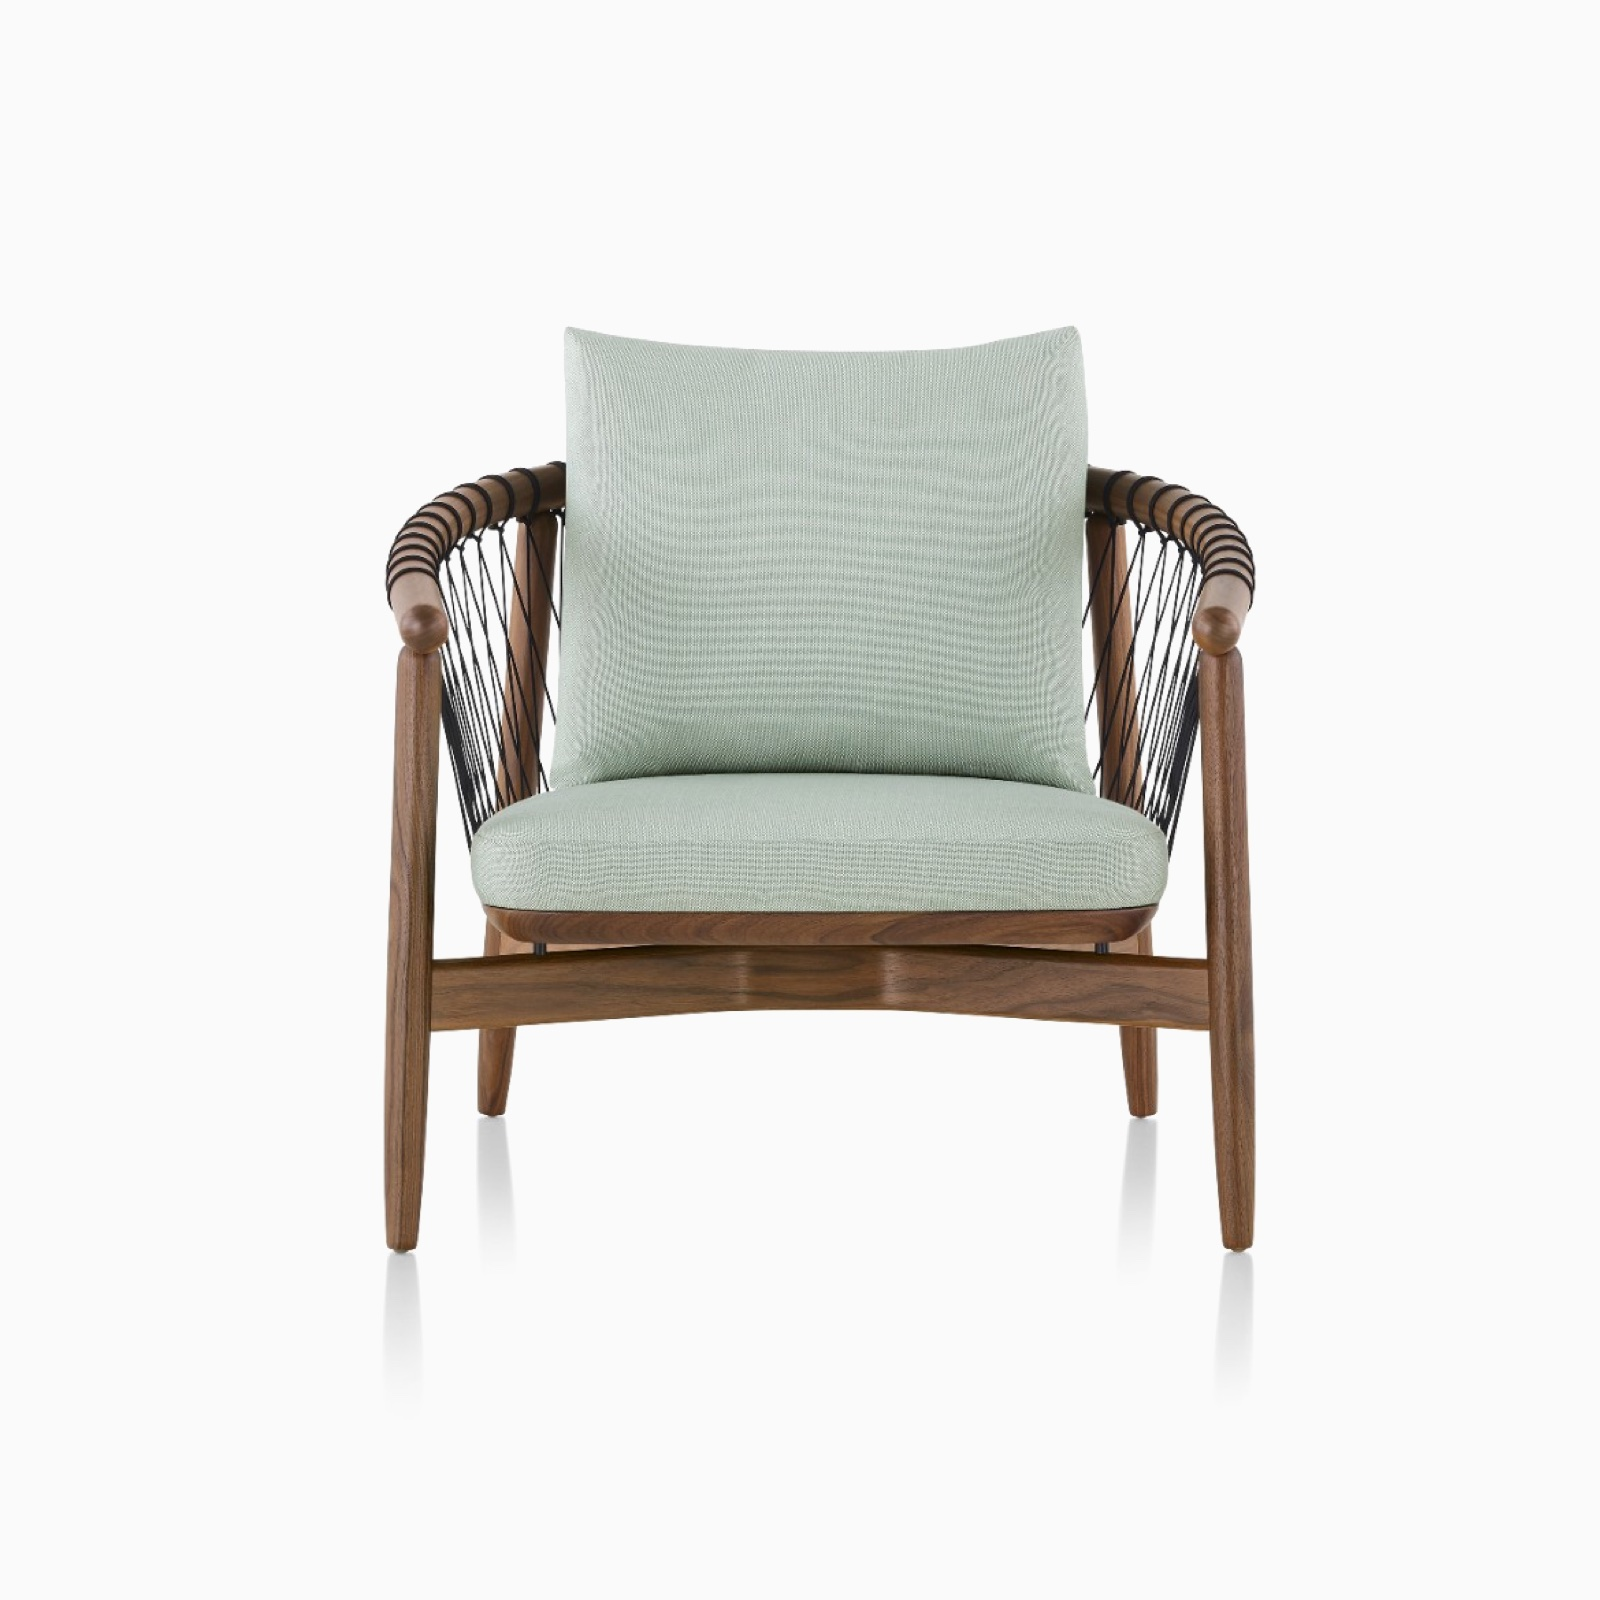 A Crosshatch Chair in Saille Celadon and Natural Walnut.